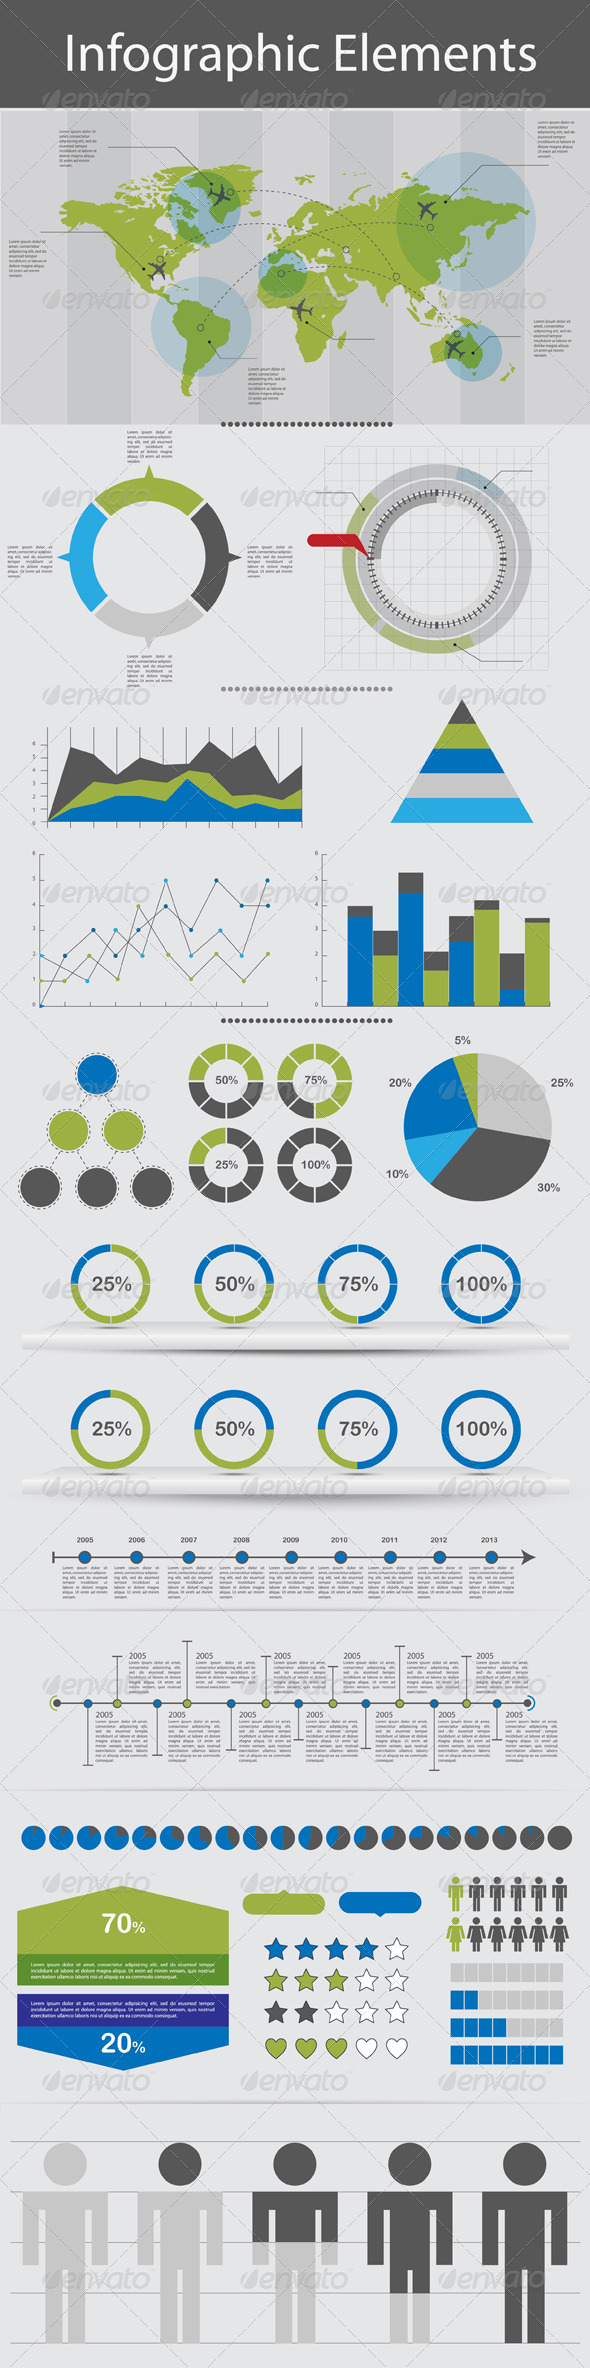 GraphicRiver Infographic Elements 2897032